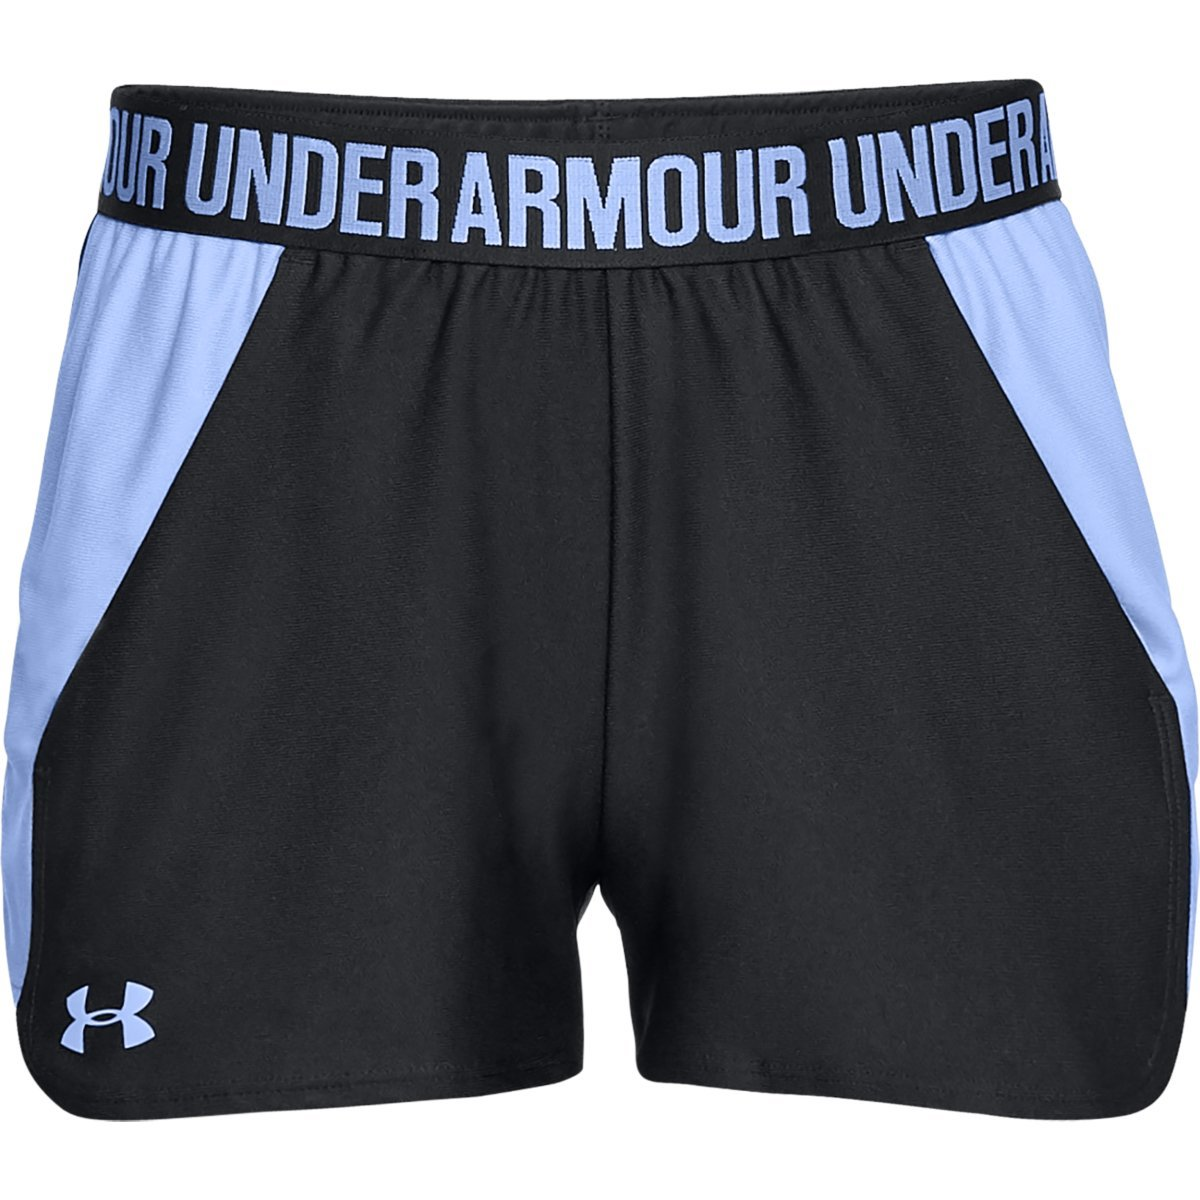 Under Armour Women's Play Up Shorts - Blue, L